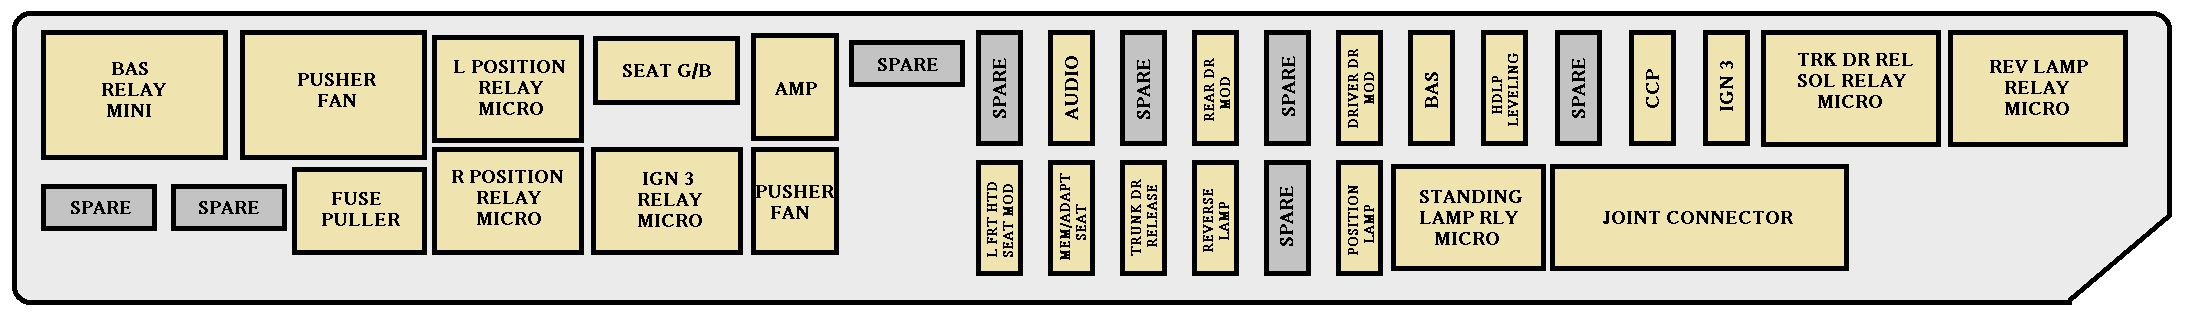 2005 cadillac cts fuse box wiring diagrams \u2022 cadillac escalade starting diagram fuse box for 2004 cadillac cts enthusiast wiring diagrams u2022 rh rasalibre co 2005 cadillac cts